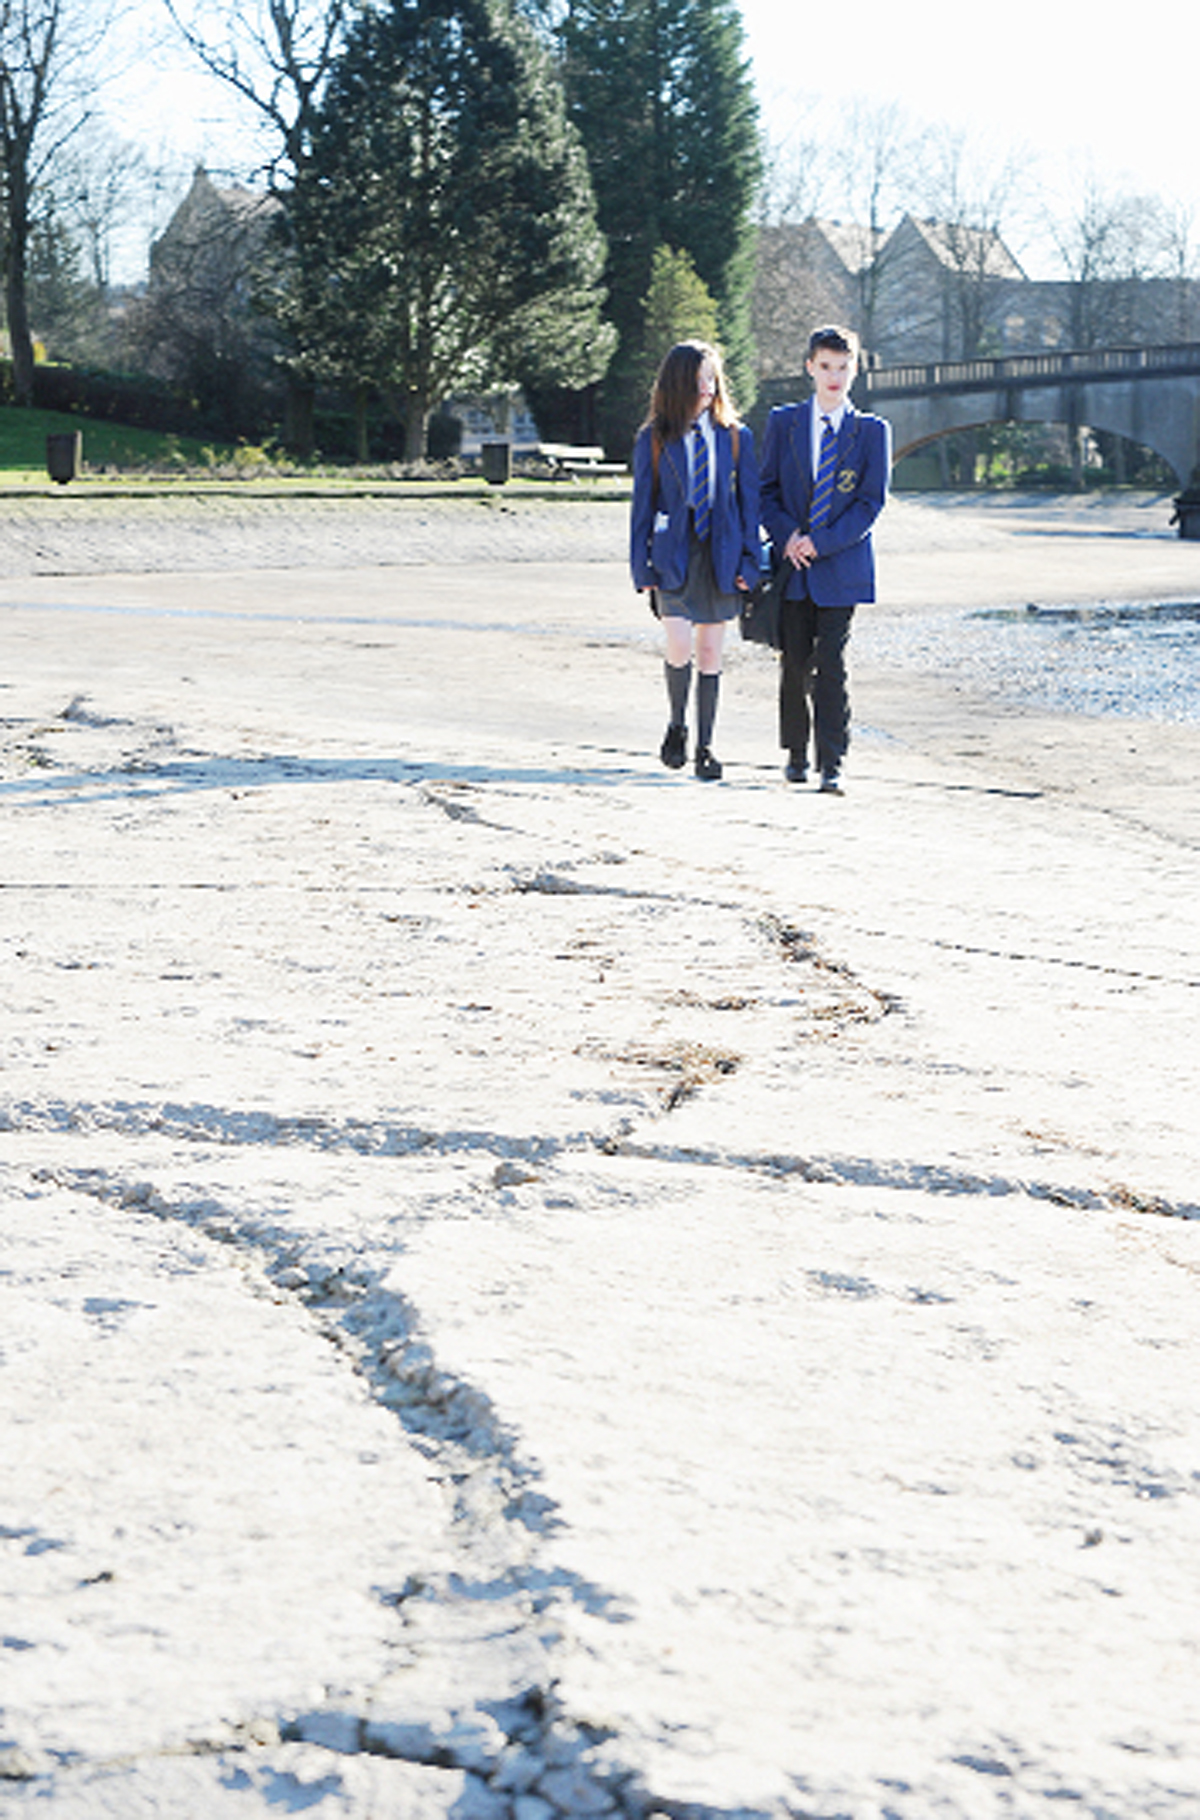 Burnley boating lake in park is drained for repairs